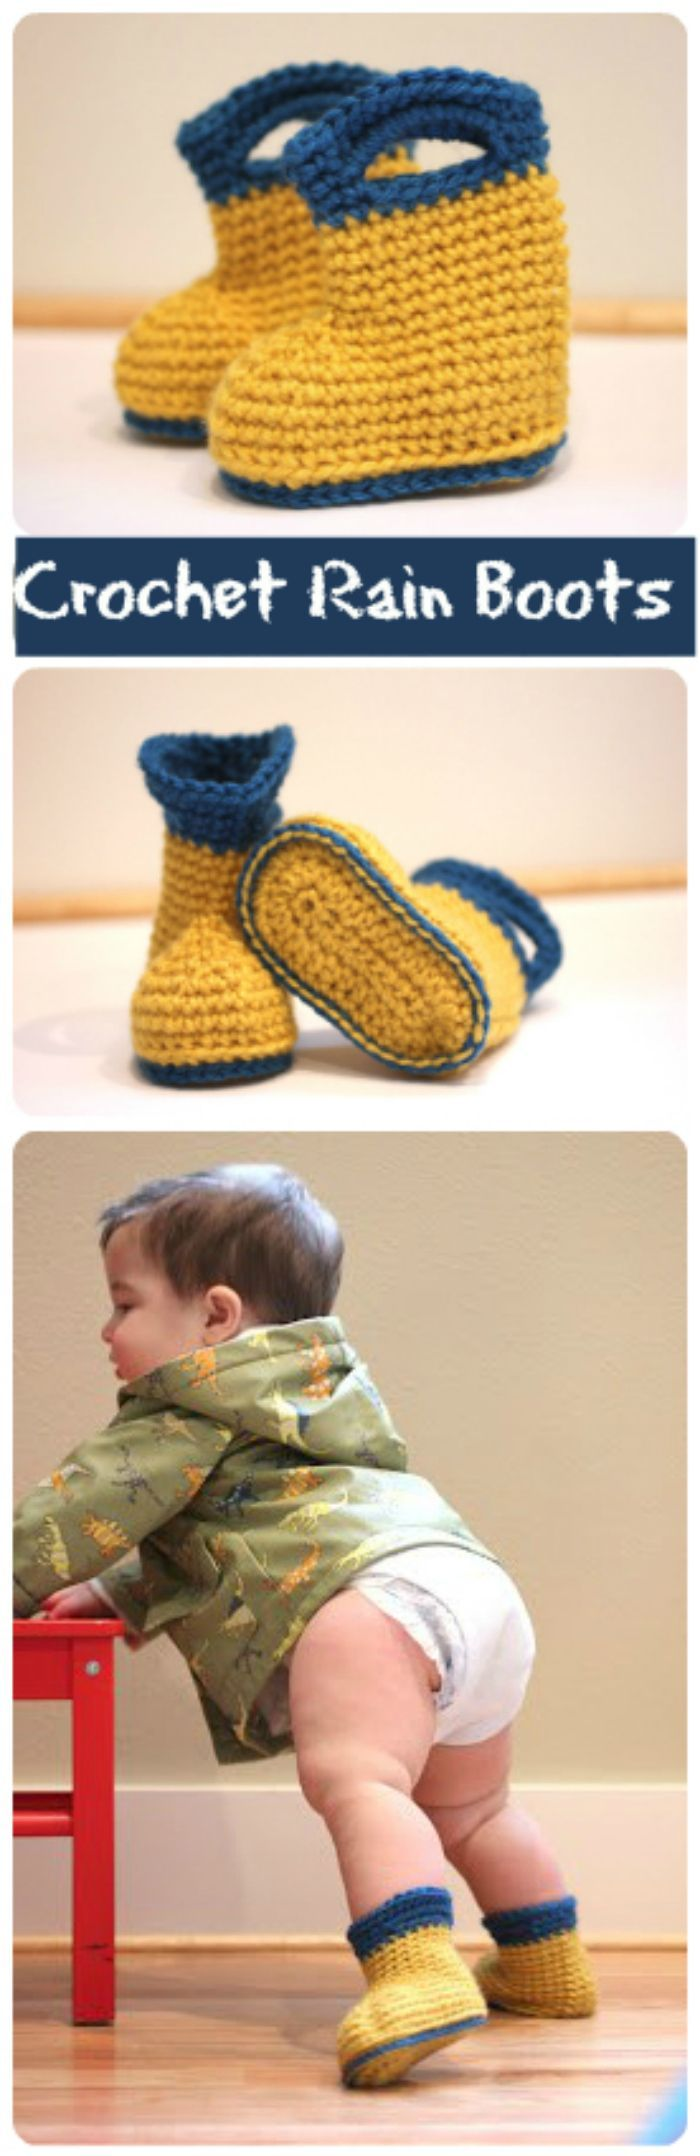 Crochet Rain Boots - 17 Free Crochet Baby Booties Pattern / Crochet Baby Shoes - Page 2 of 4 - I Heart Crafty